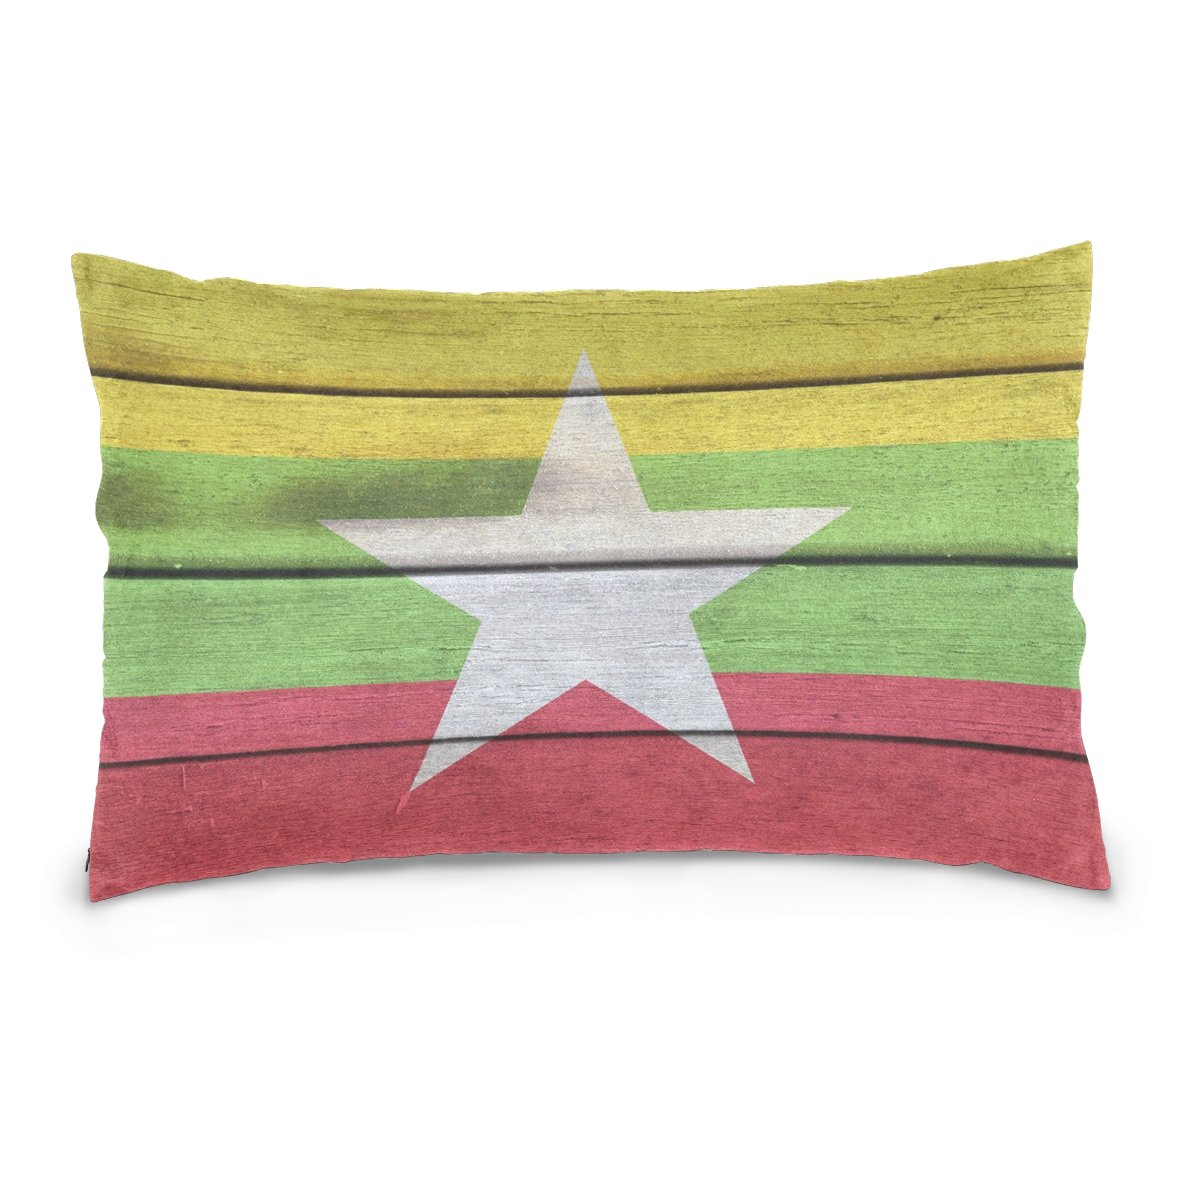 ALAZA Myanmar Flag Colorful Star over Wood Surface Cotton Lint Pillow Case,Double-sided Printing Home Decor Pillowcase Size 16''x24'',for Bedroom Women Girl Boy